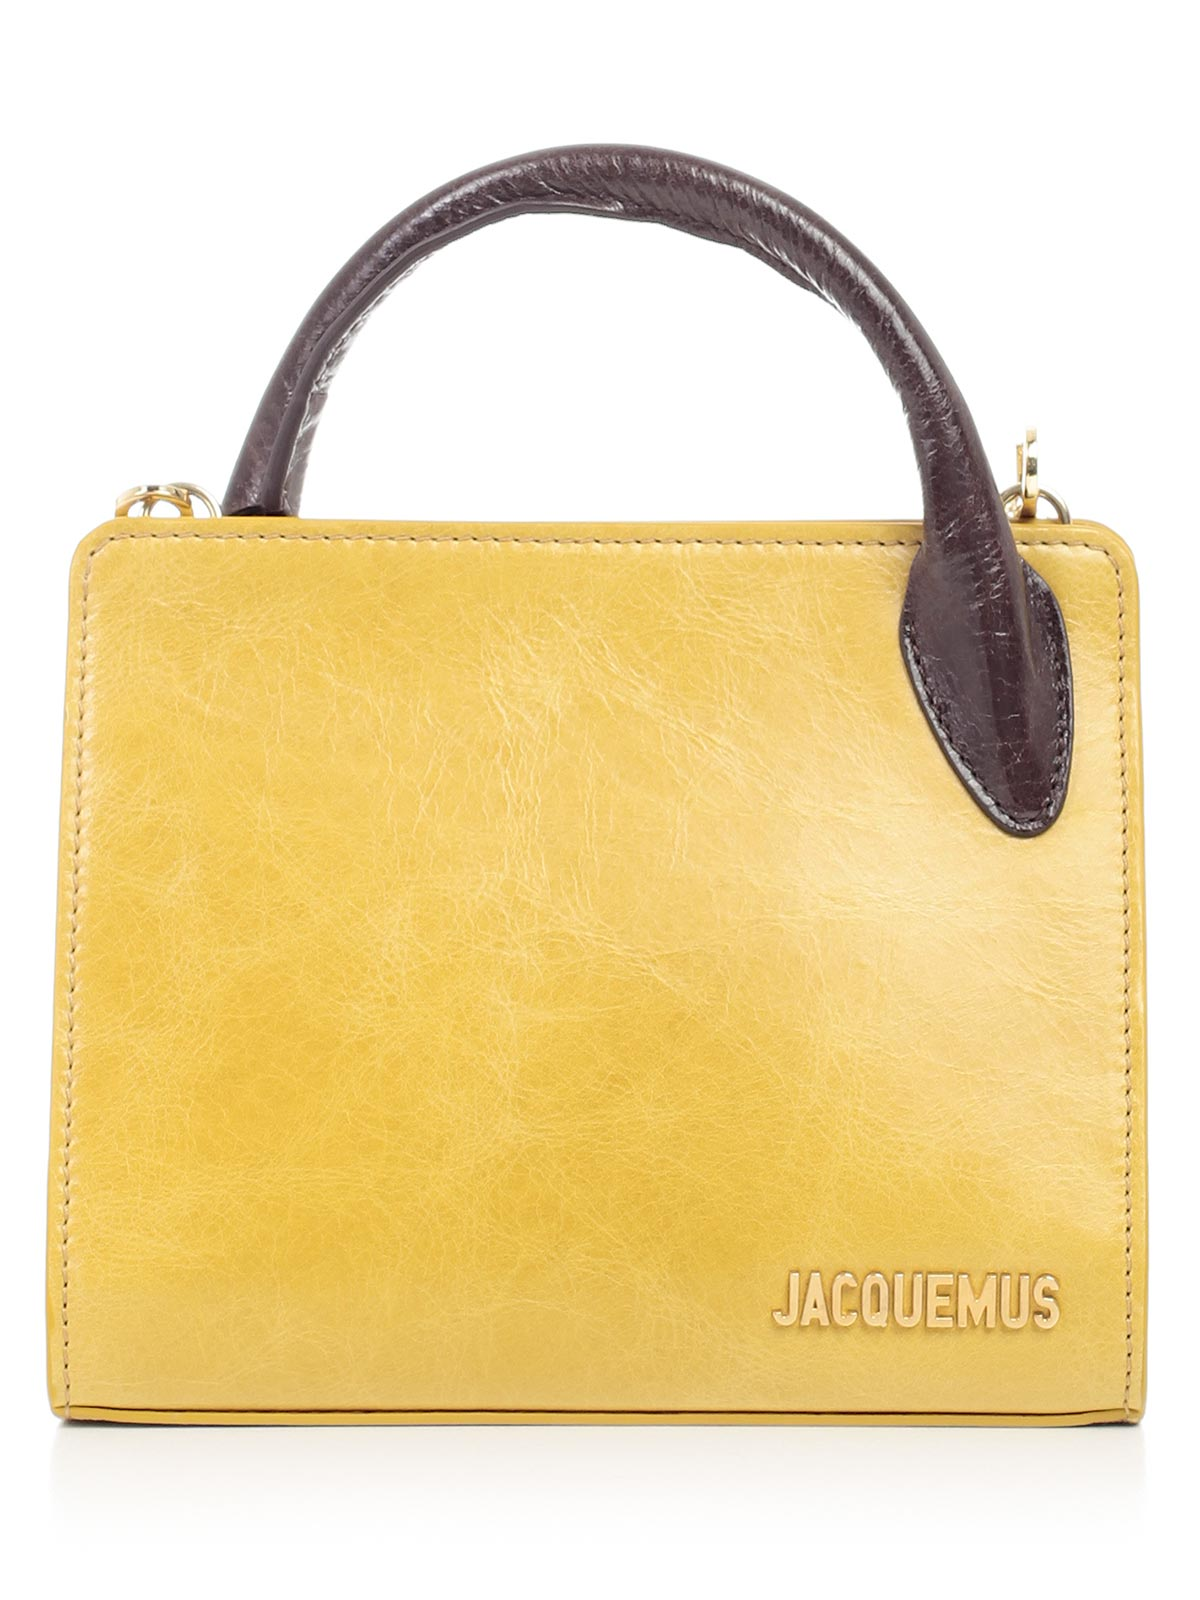 Picture of Jacquemus Totes